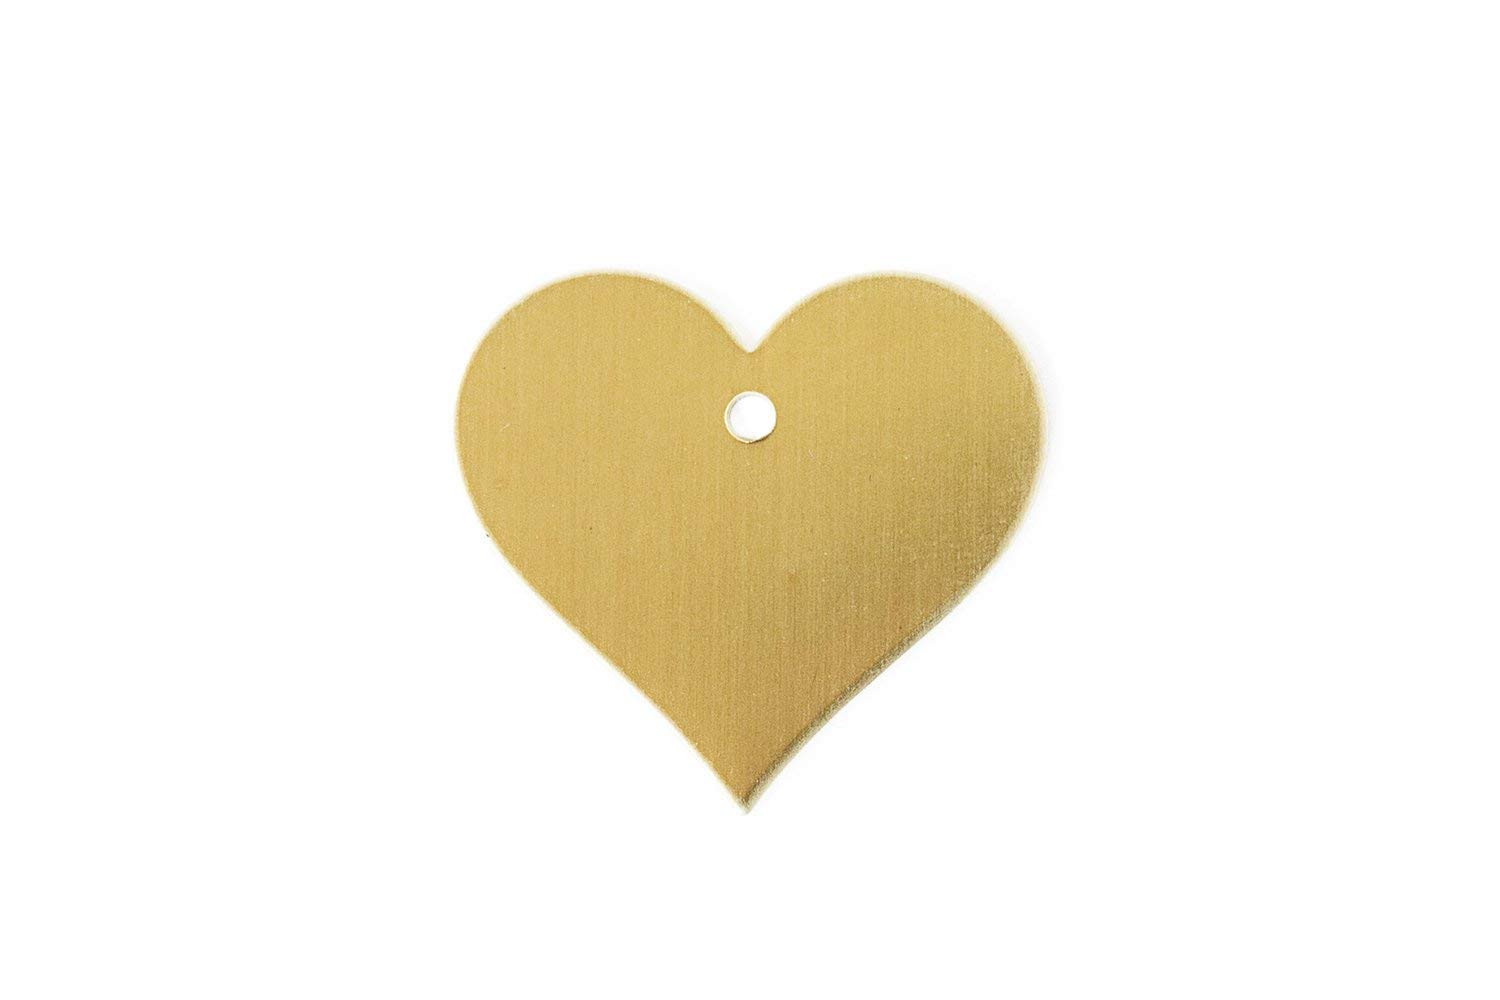 "RMP Stamping Blanks, 1.151"" x 1.25"" Heart With Hole, .032"" (20 Gauge) Brass - 20 Pack"